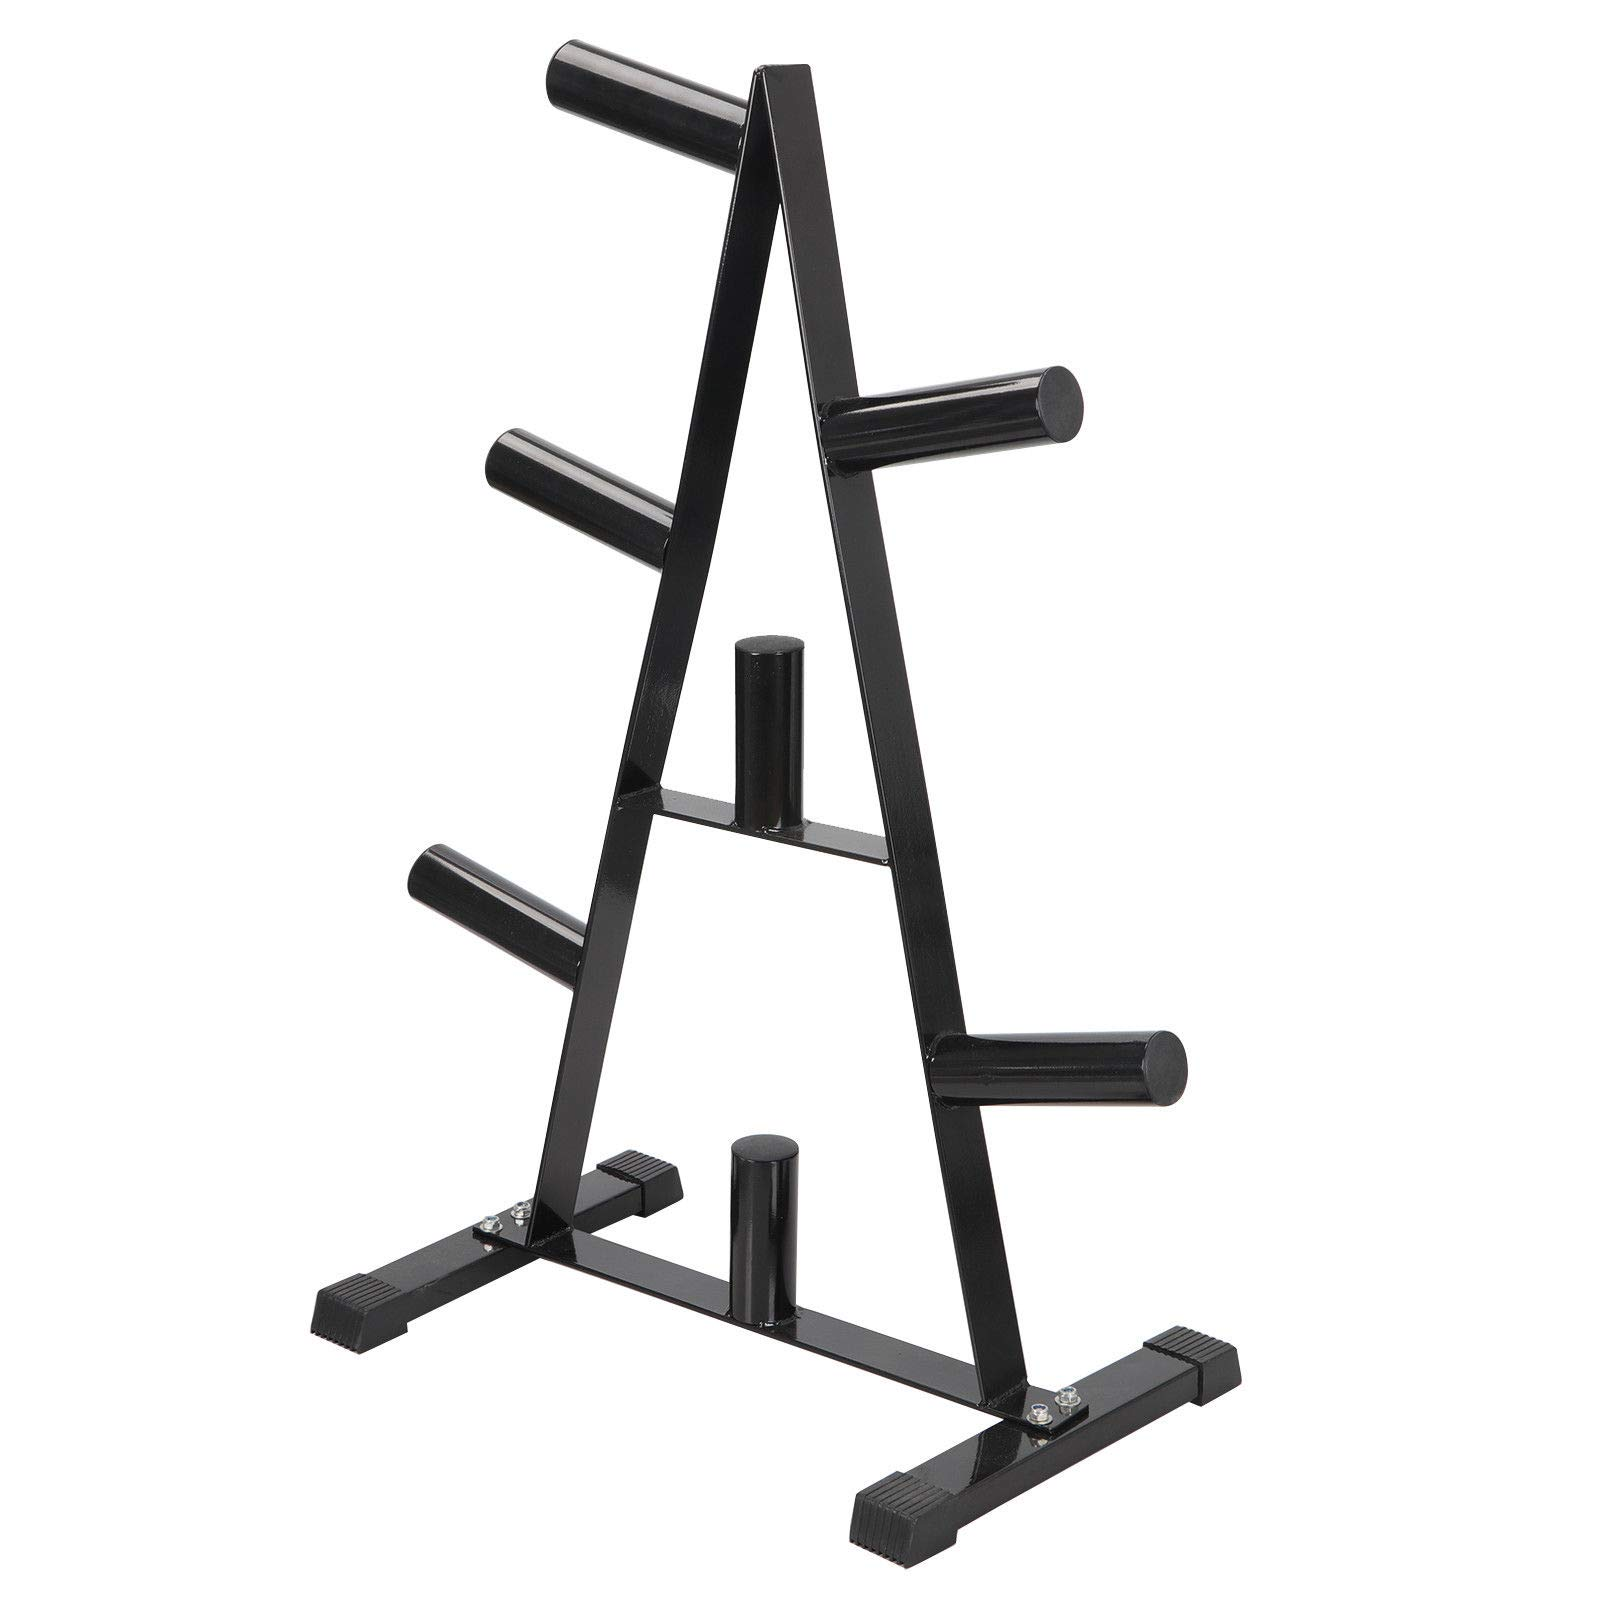 Heavy Duty Triangular Design Olympic Weight & Storage Rack Easy Storage Workout Space Organized Gym Fitness Strength Training Exercise Weight Capacity of 400 LBS Ideal For Home Or Professional Gym Use by Precioso